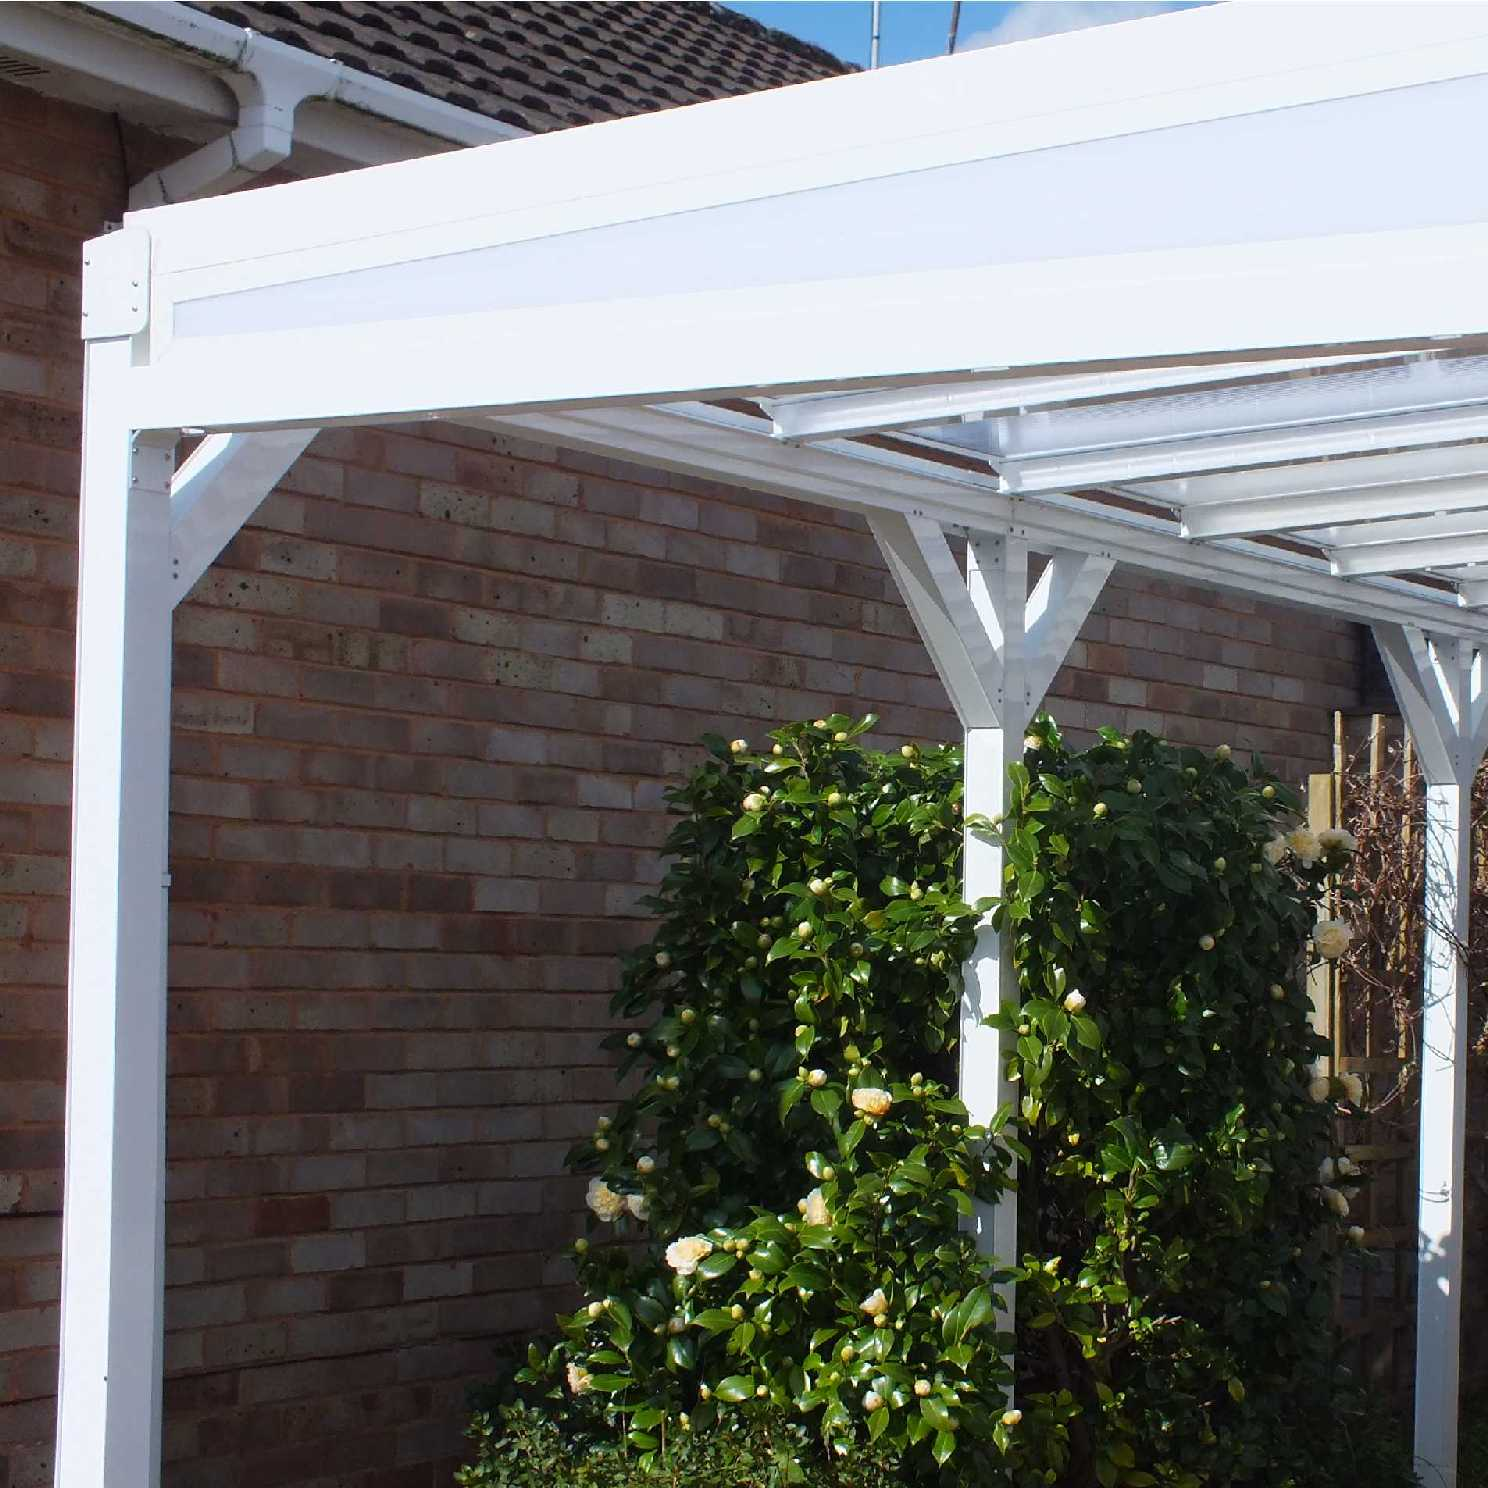 Omega Smart White Lean-To Canopy with 16mm Polycarbonate Glazing - 4.2m (W) x 1.5m (P), (3) Supporting Posts from Omega Build